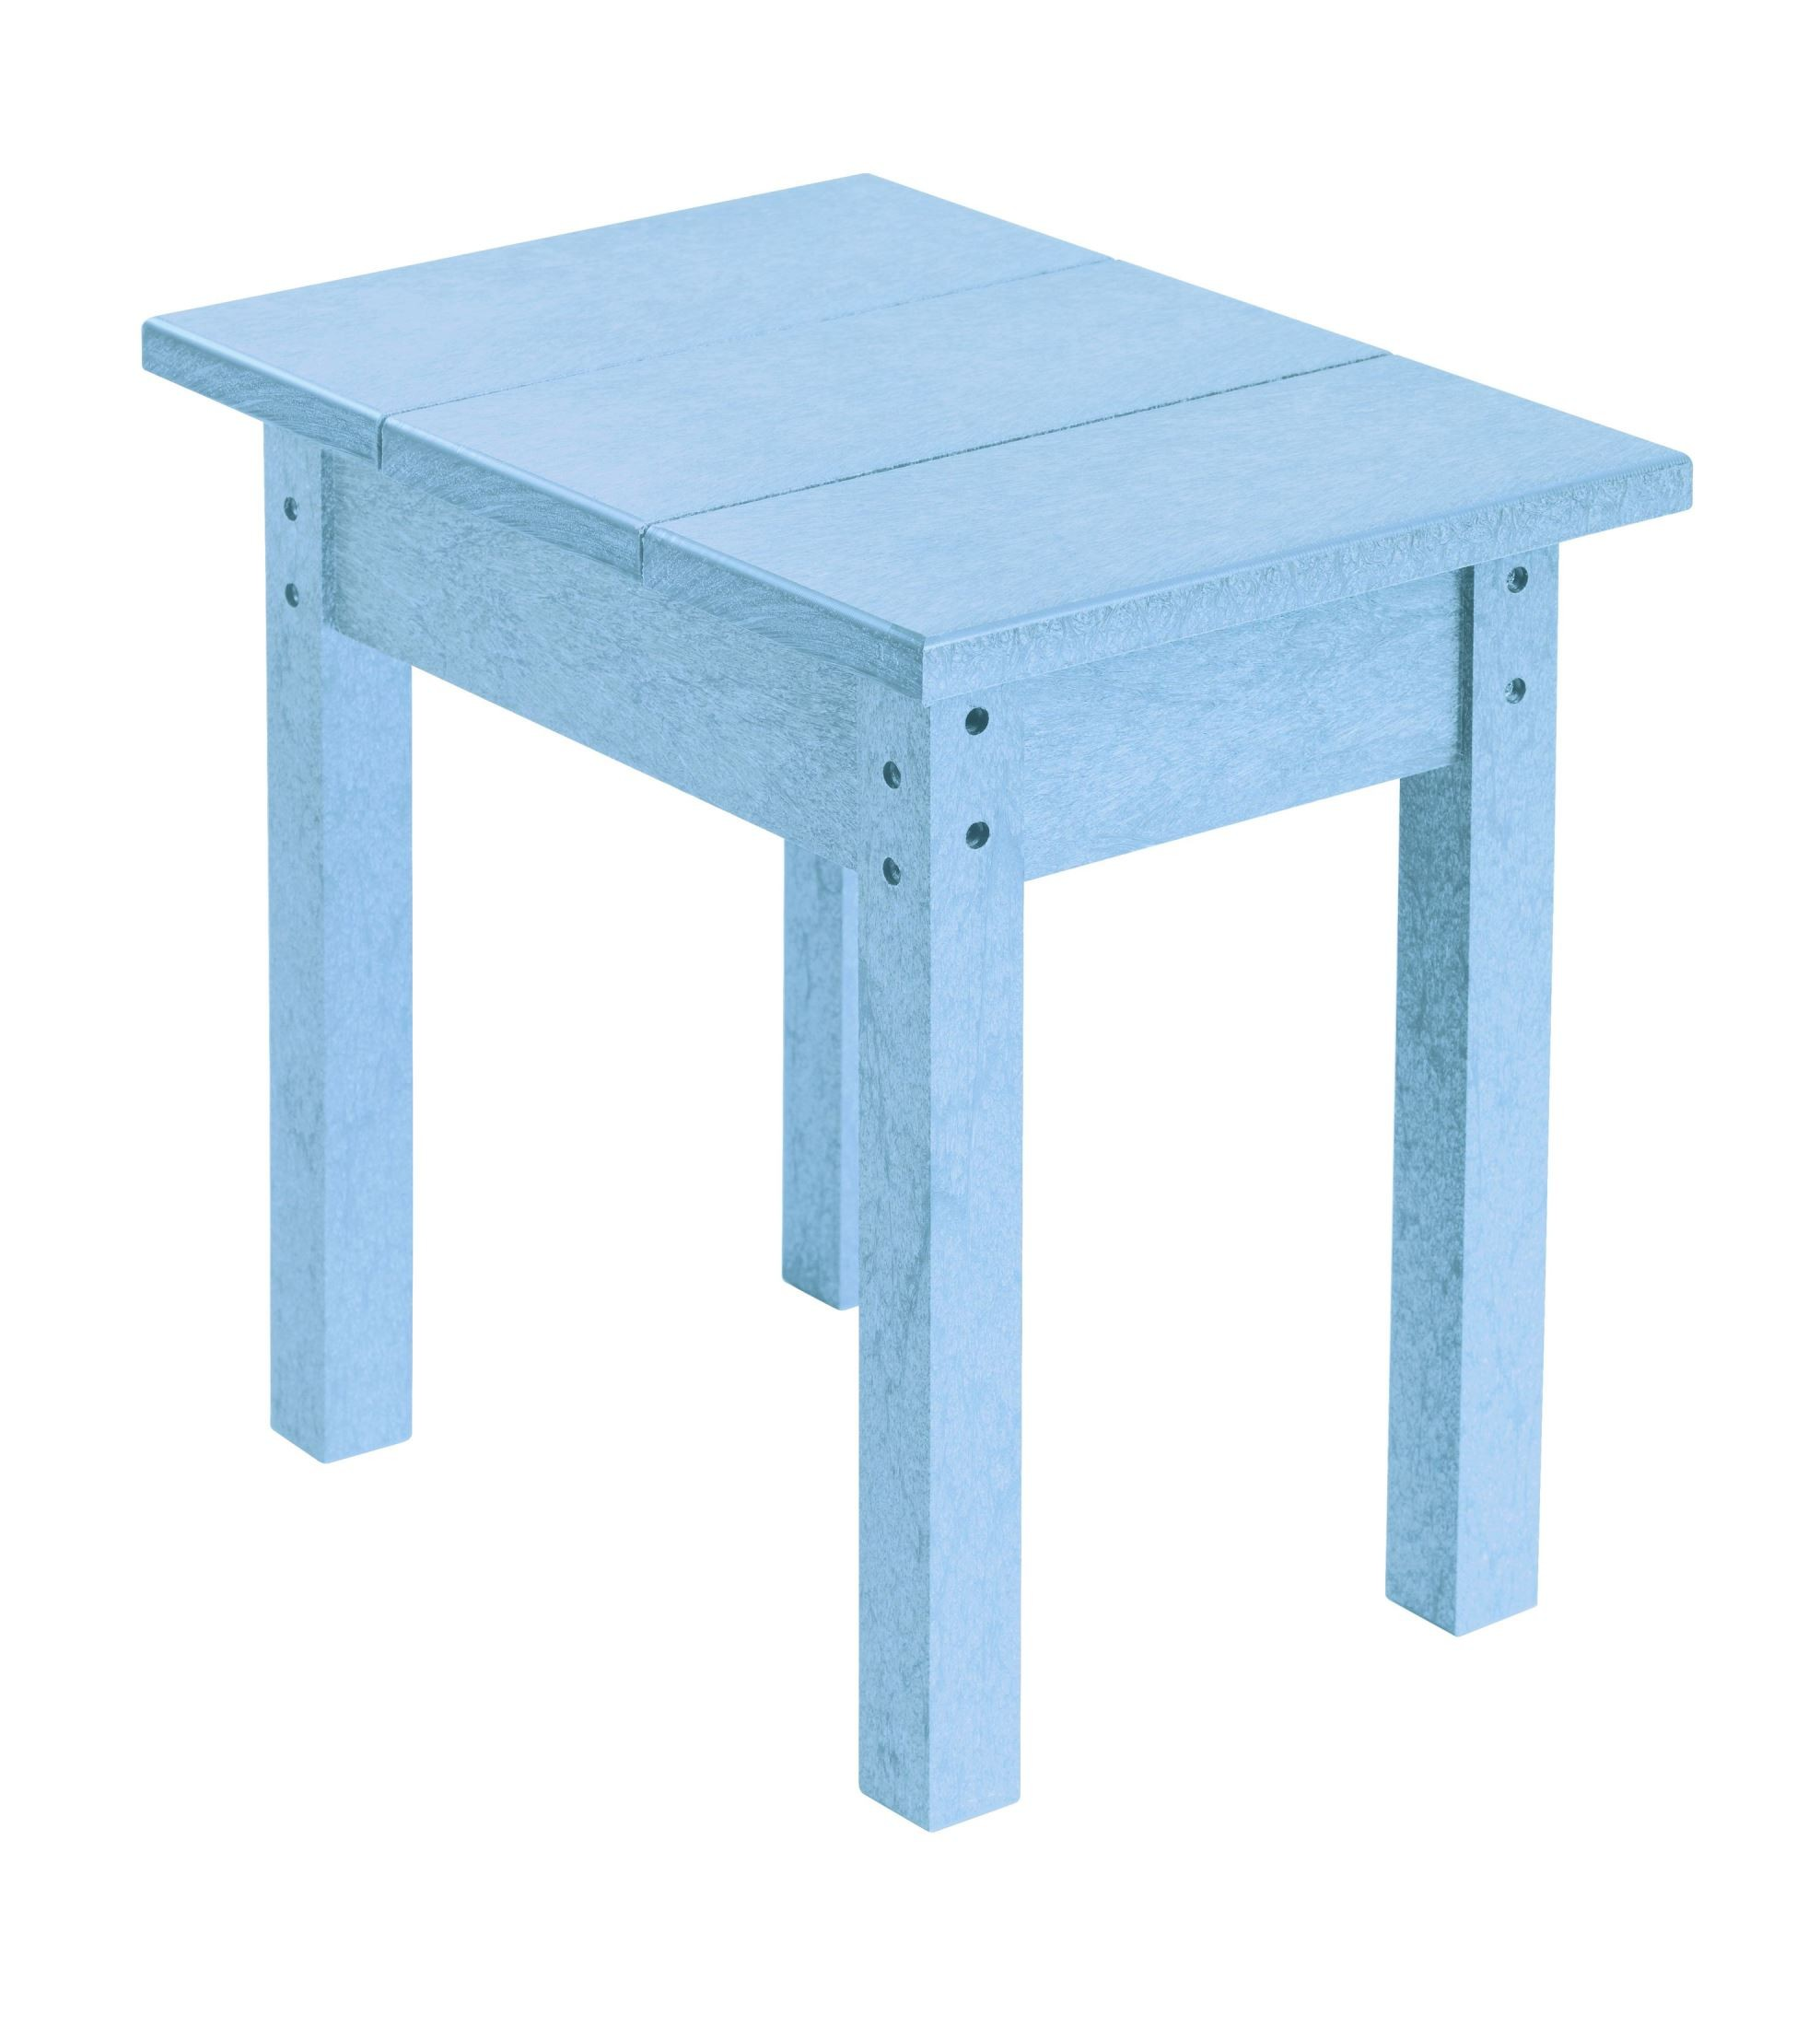 Generations Sky Blue Small Side Table From Cr Plastic T01